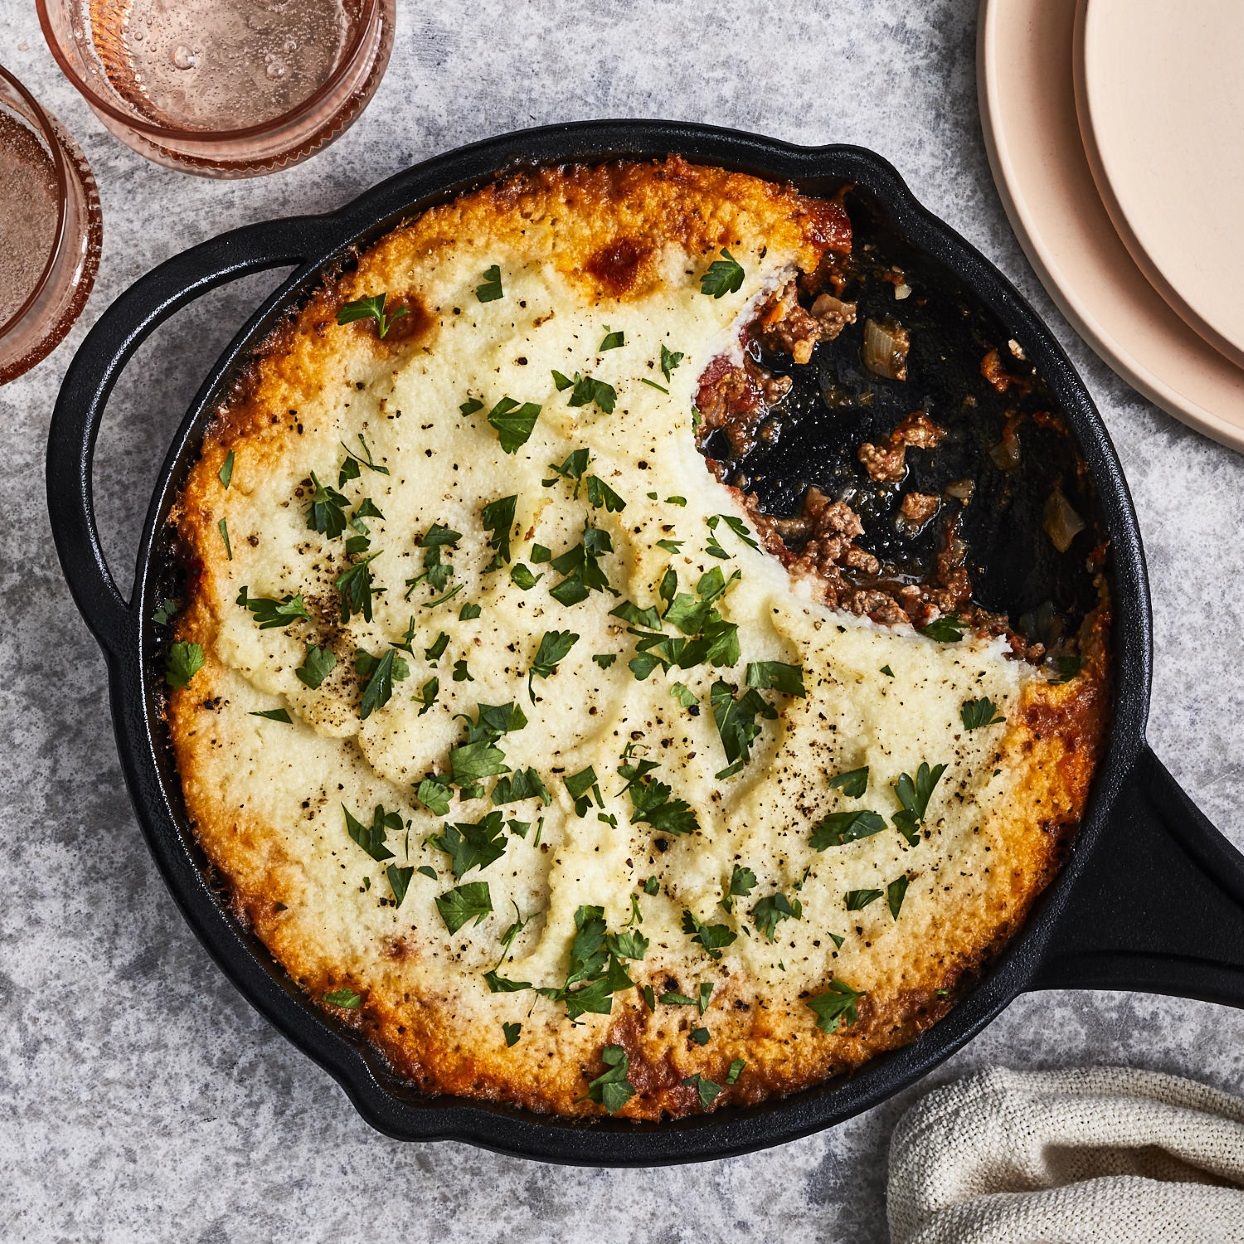 Shepherd's Pie with Cauliflower Topping Trusted Brands